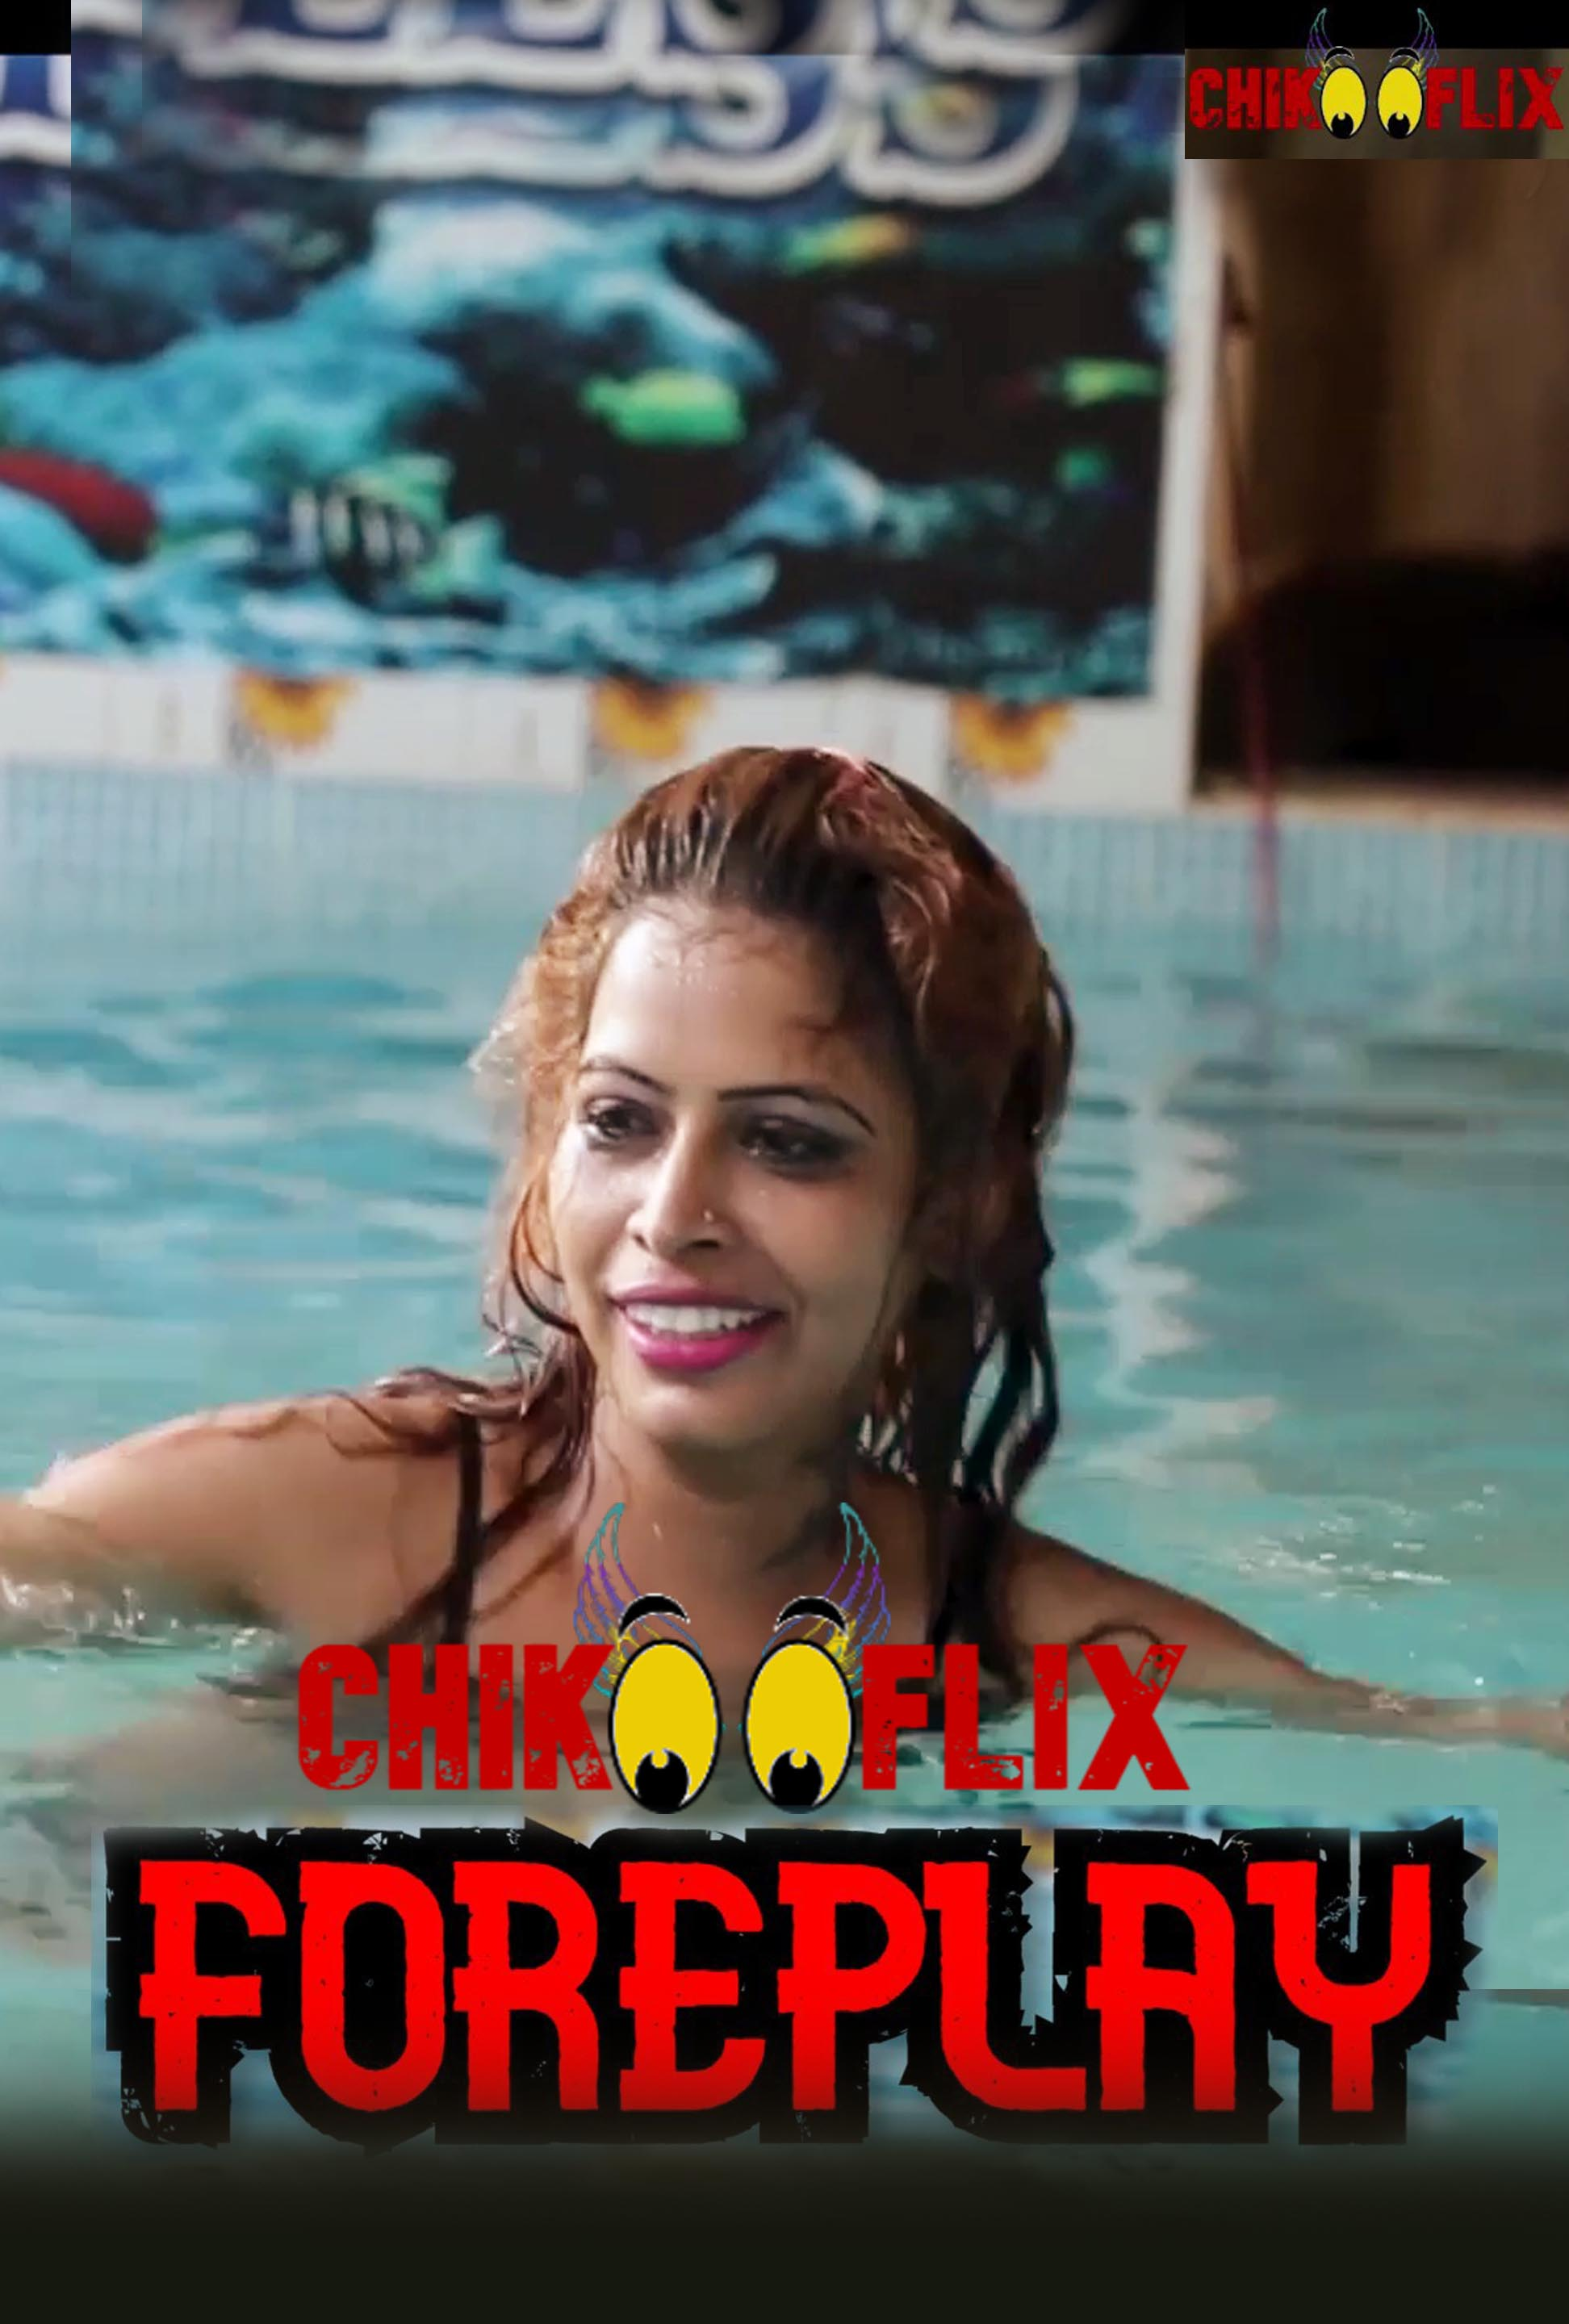 18+ Foreplay 2020 ChikooFlix Originals Hindi Short Film 720p HDRip 180MB x264 AAC